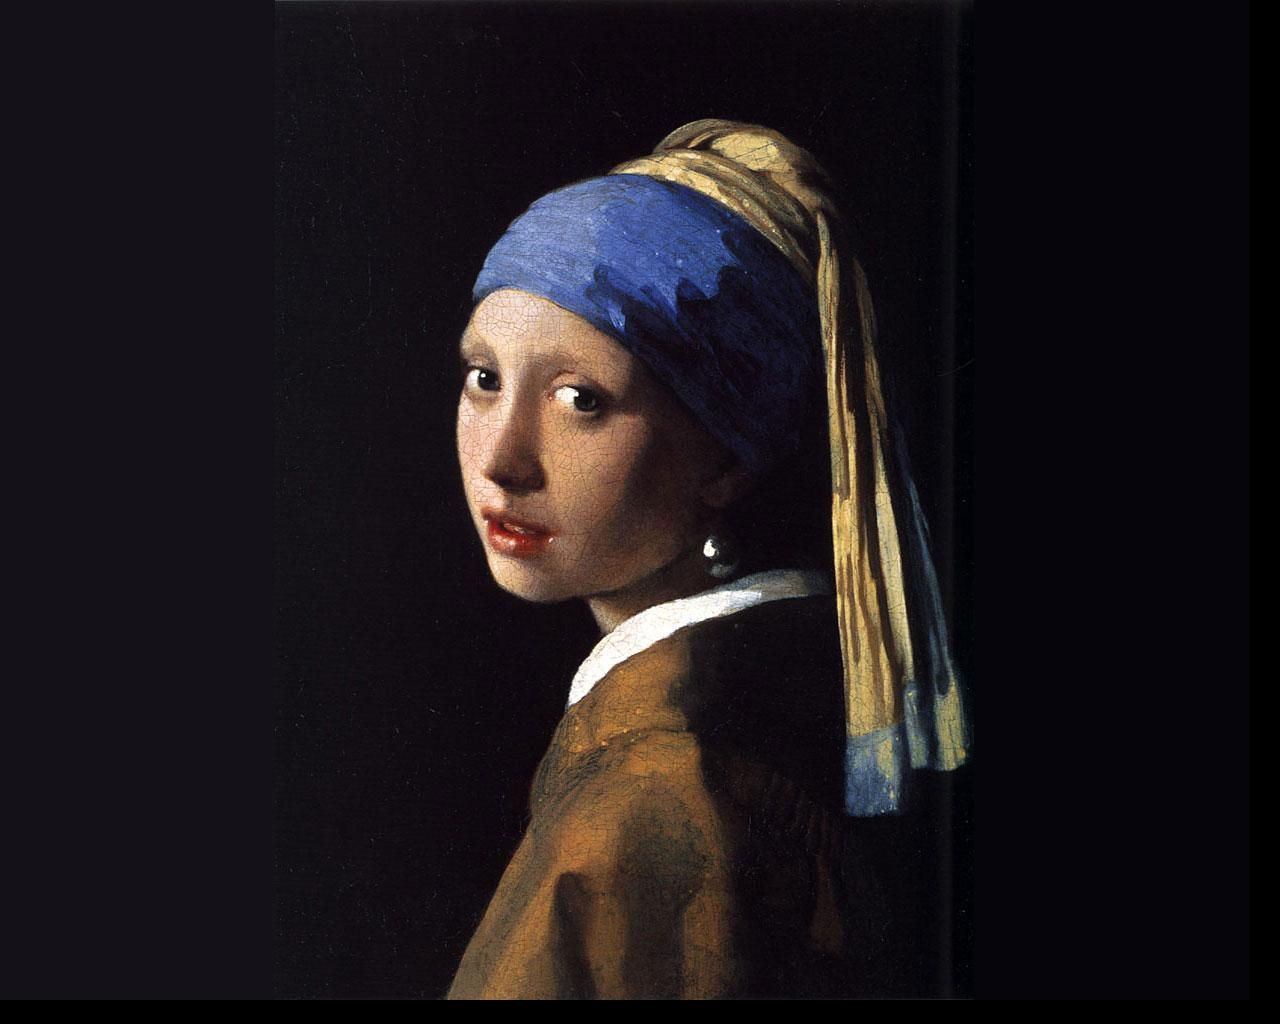 Johannes Vermeer - Girl with a Pearl Earring Wallpaper #4 1280 x 1024